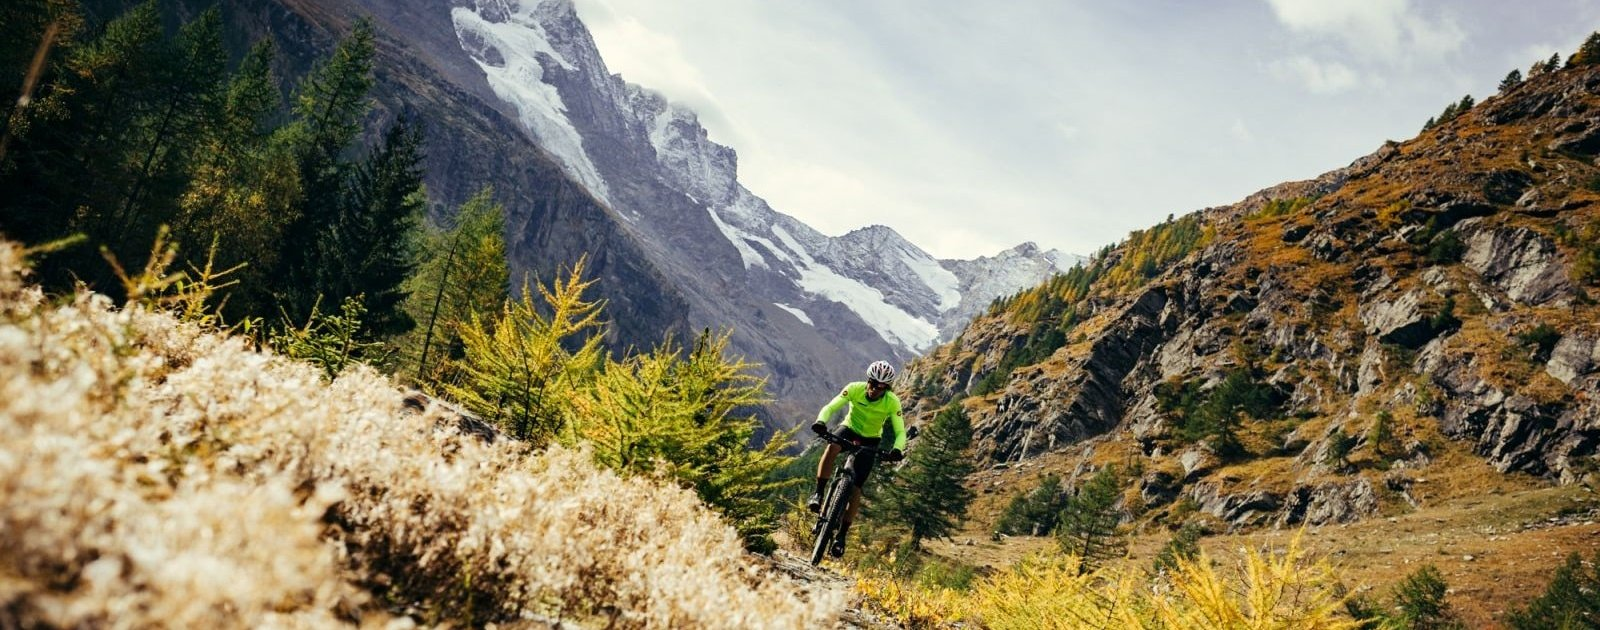 Mountainbiken in Cogne (c) Franz Walter